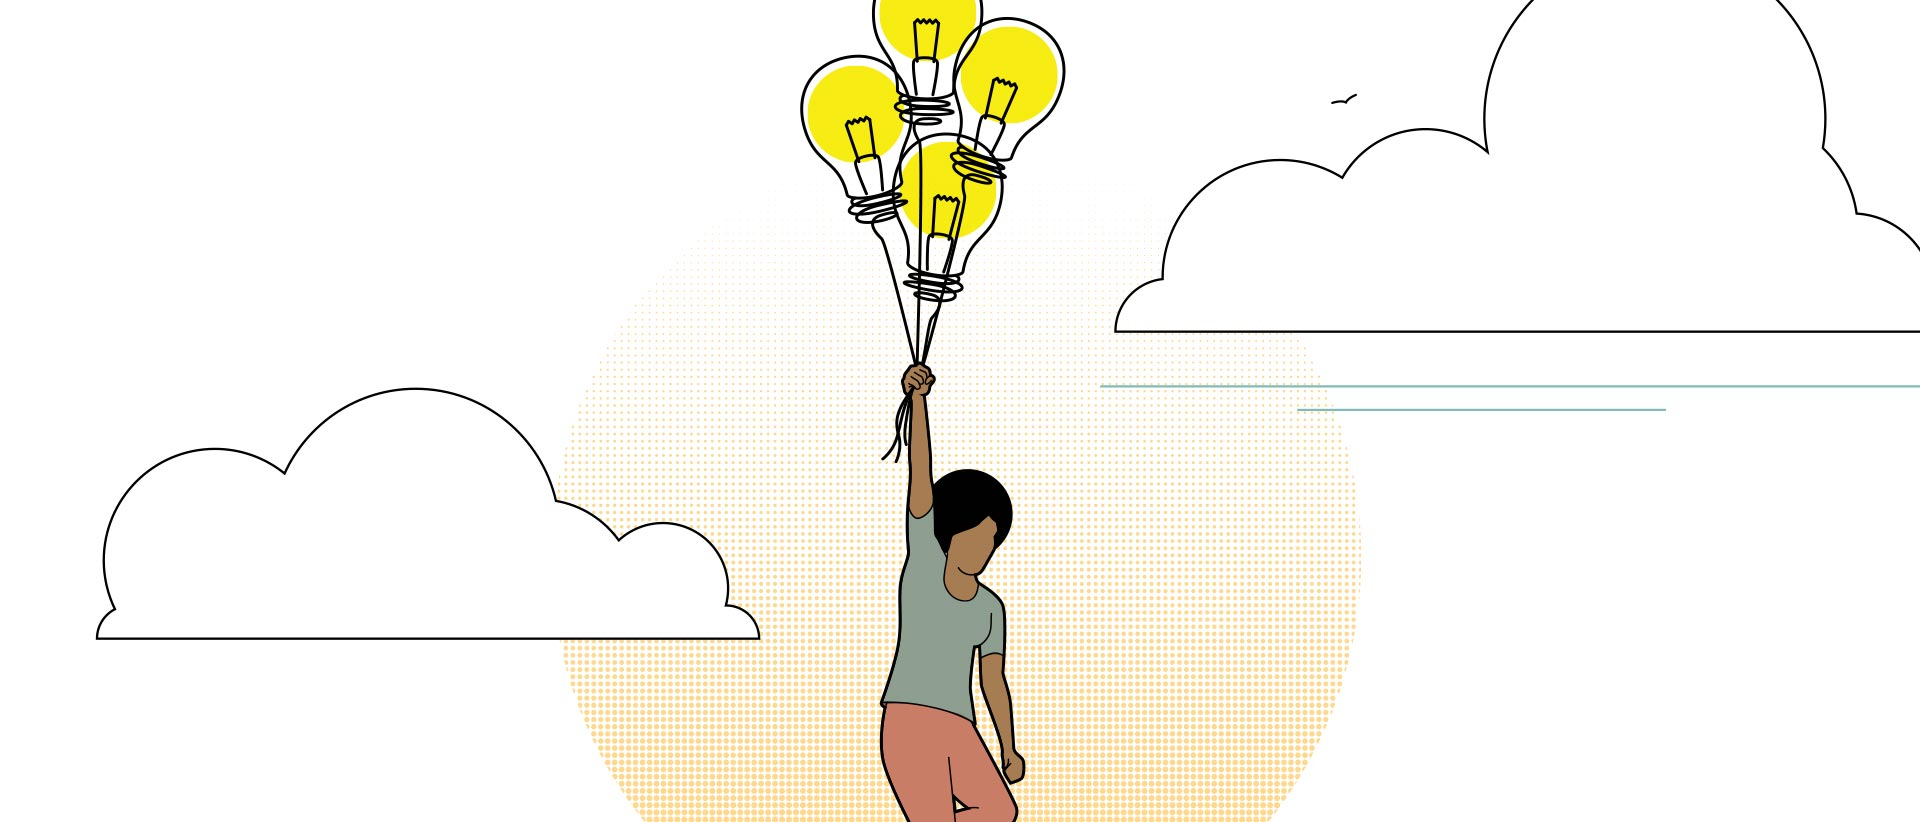 Illustration of a person floating among clouds by holding a bunch of balloons. The balloons have light bulbs inside them.